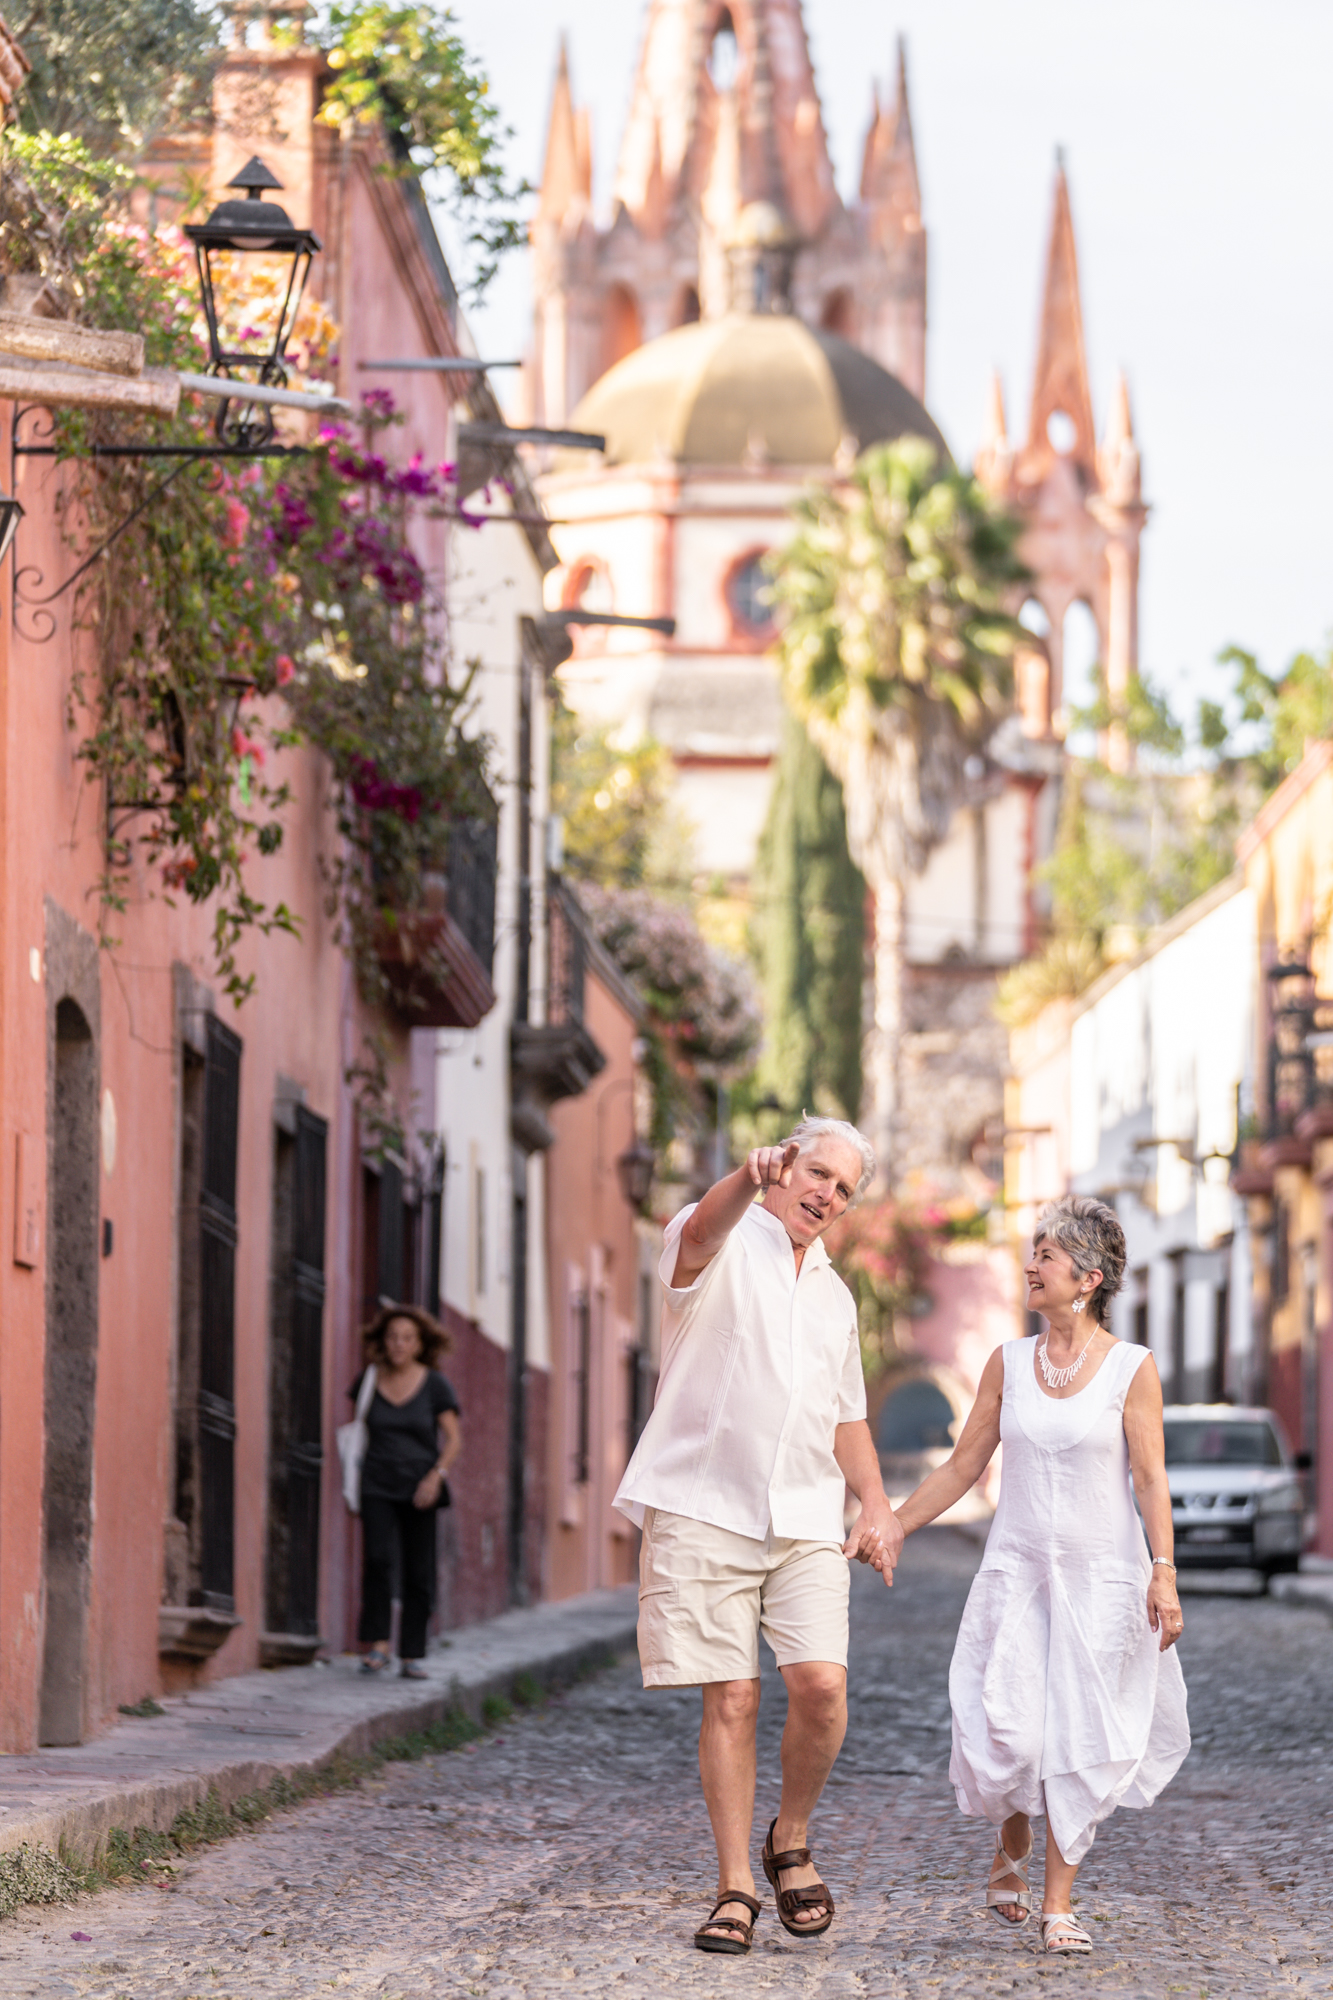 Photoshoot session in San Miguel de Allende with Suzanne and Leo-13.jpg